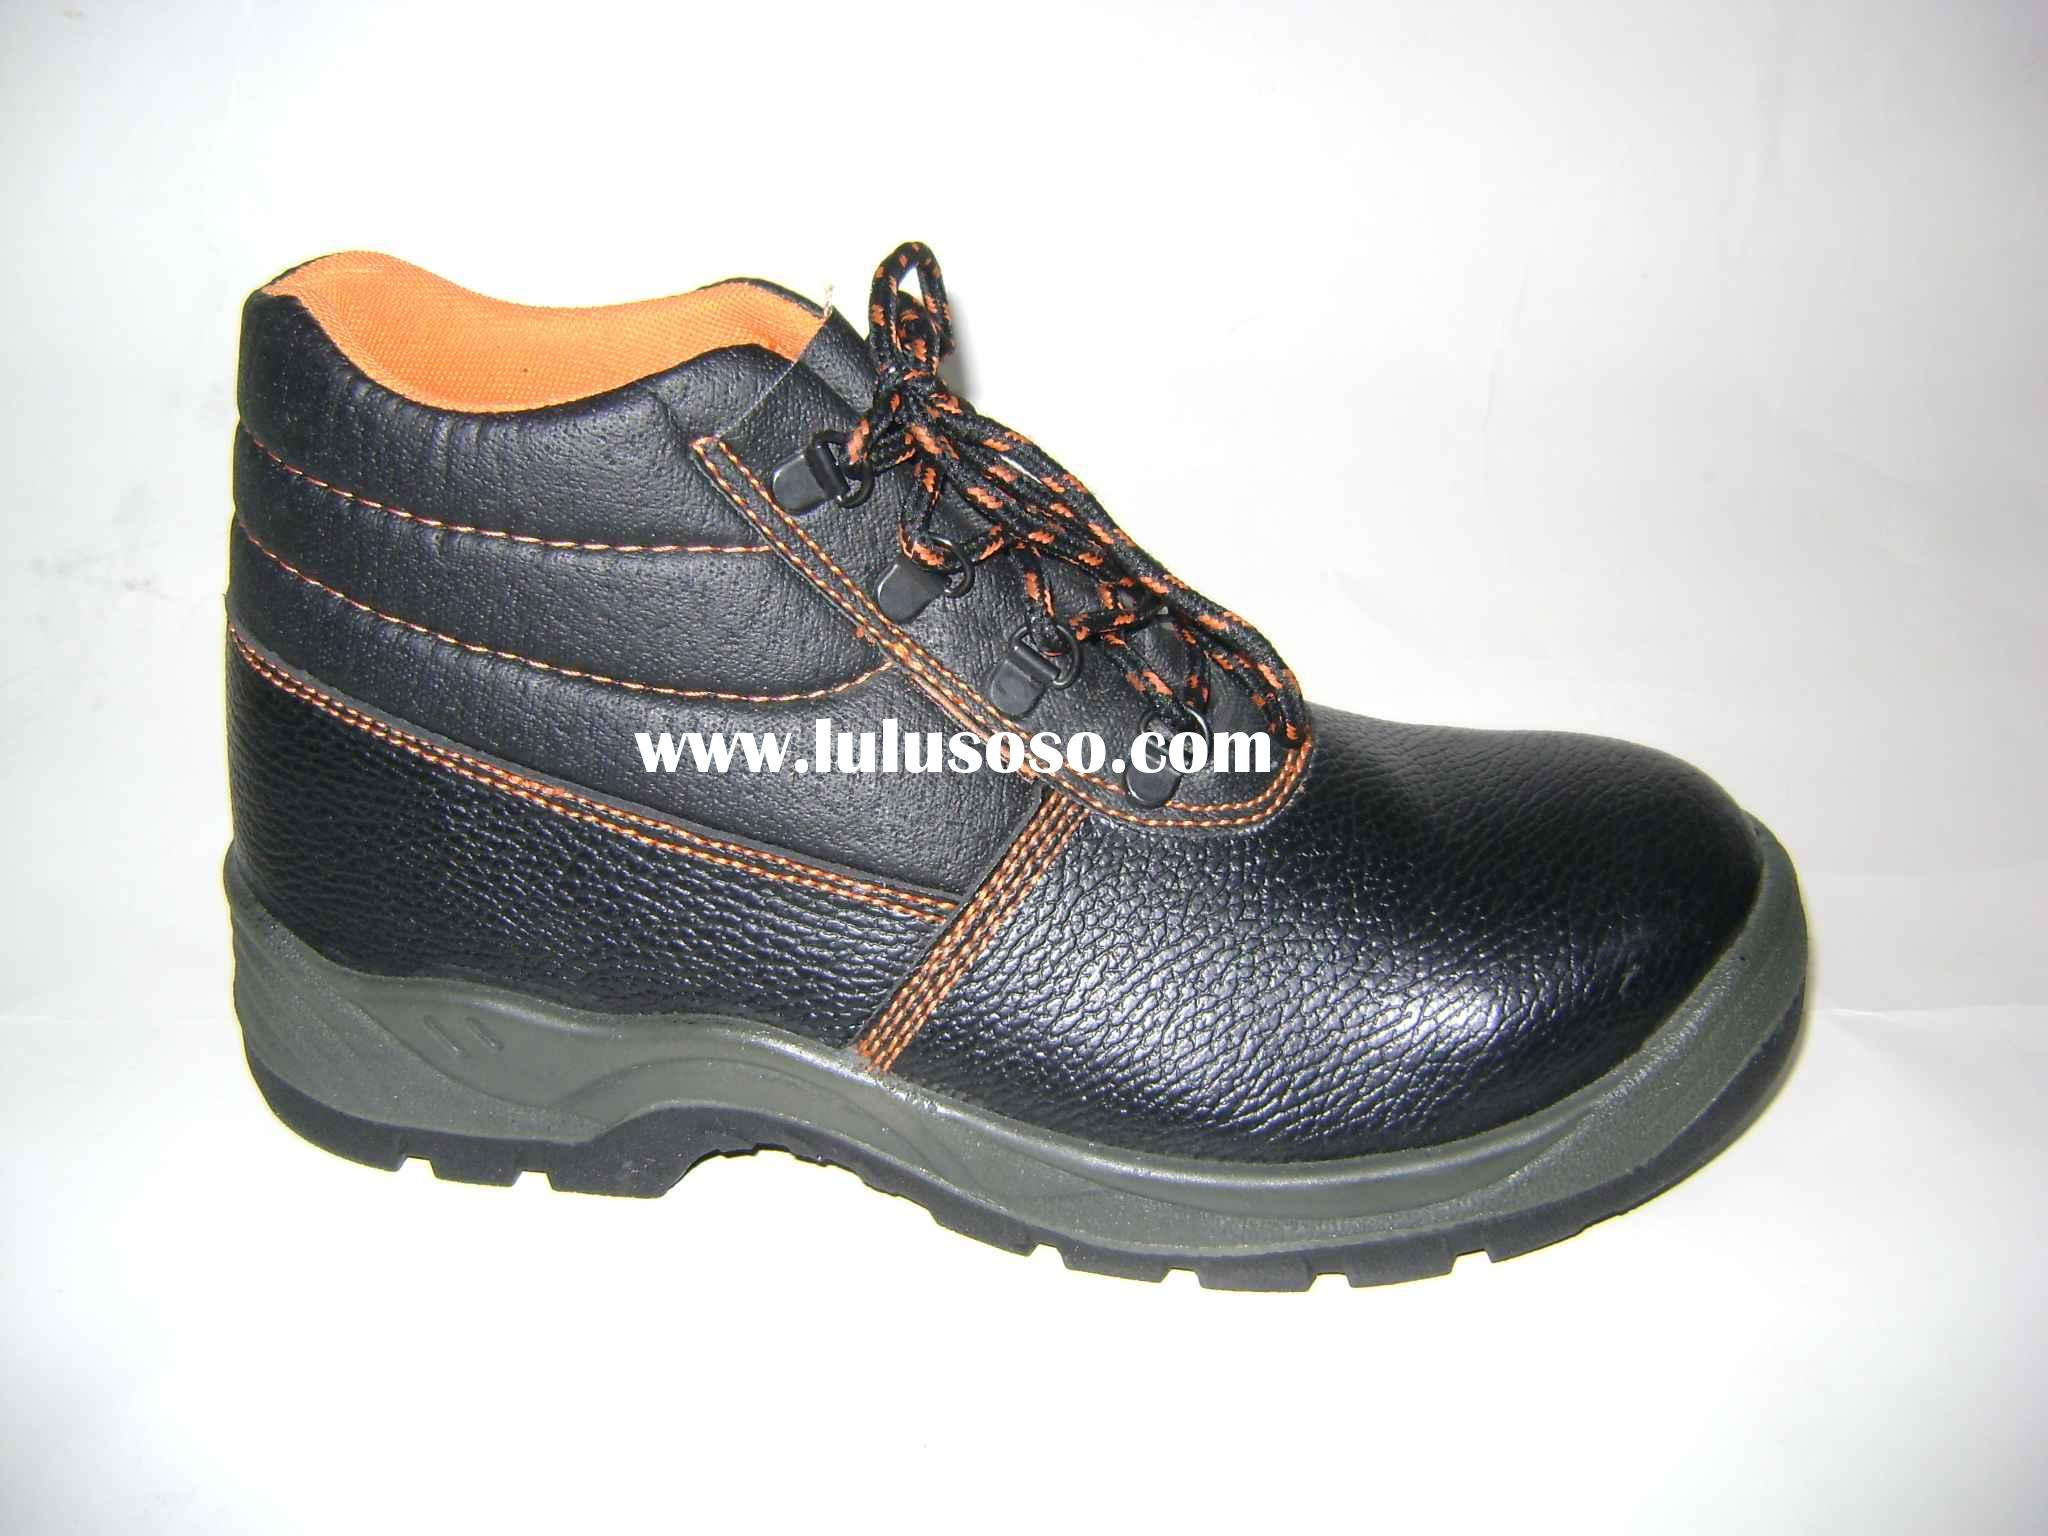 industrial safety shoes in india, industrial safety shoes in india ...